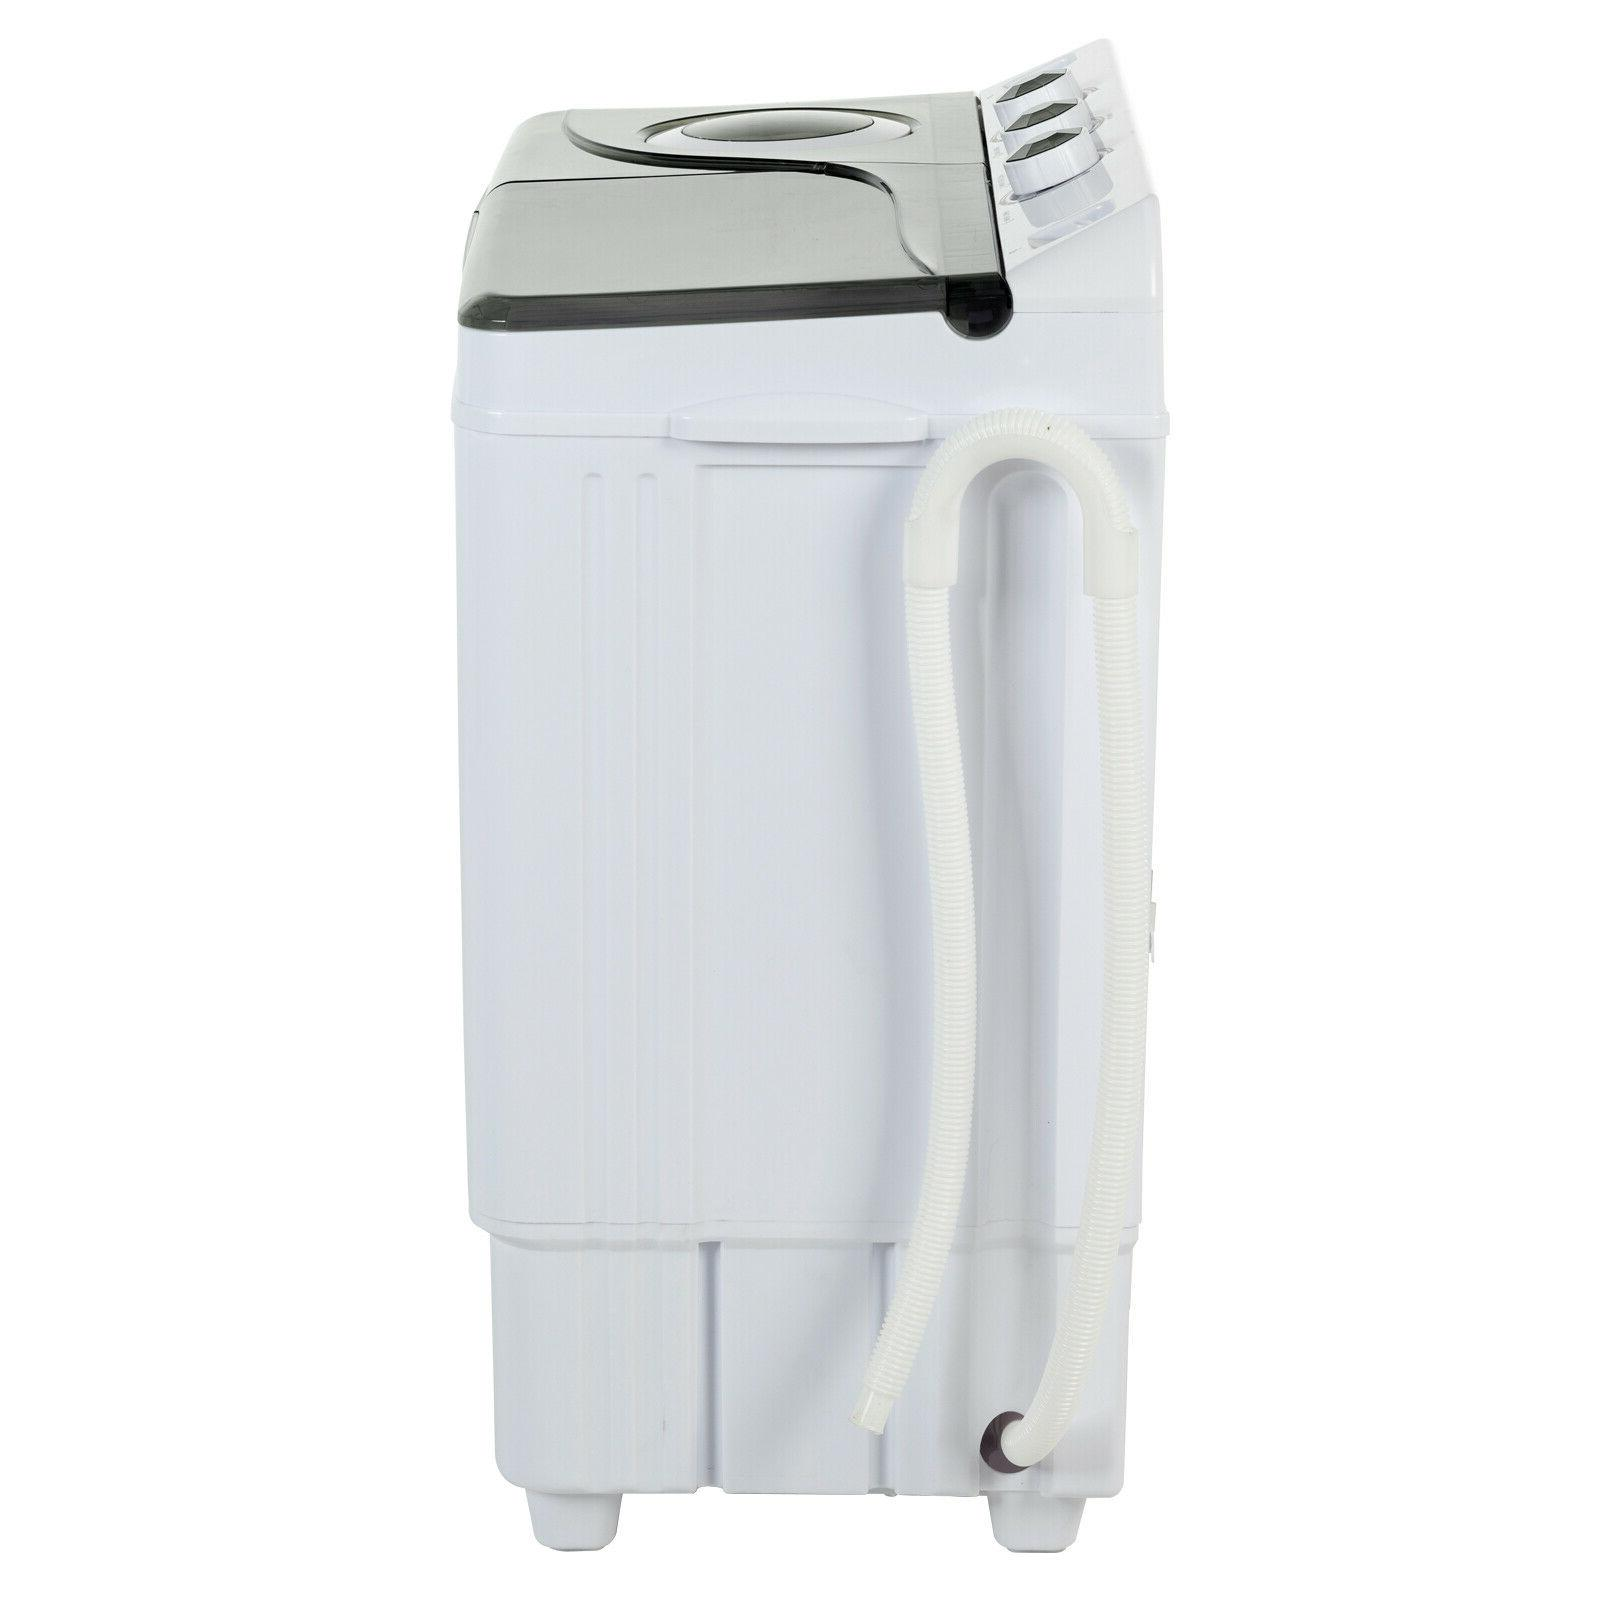 26 LBS Portable Machine Compact Laundry Spin Dryer